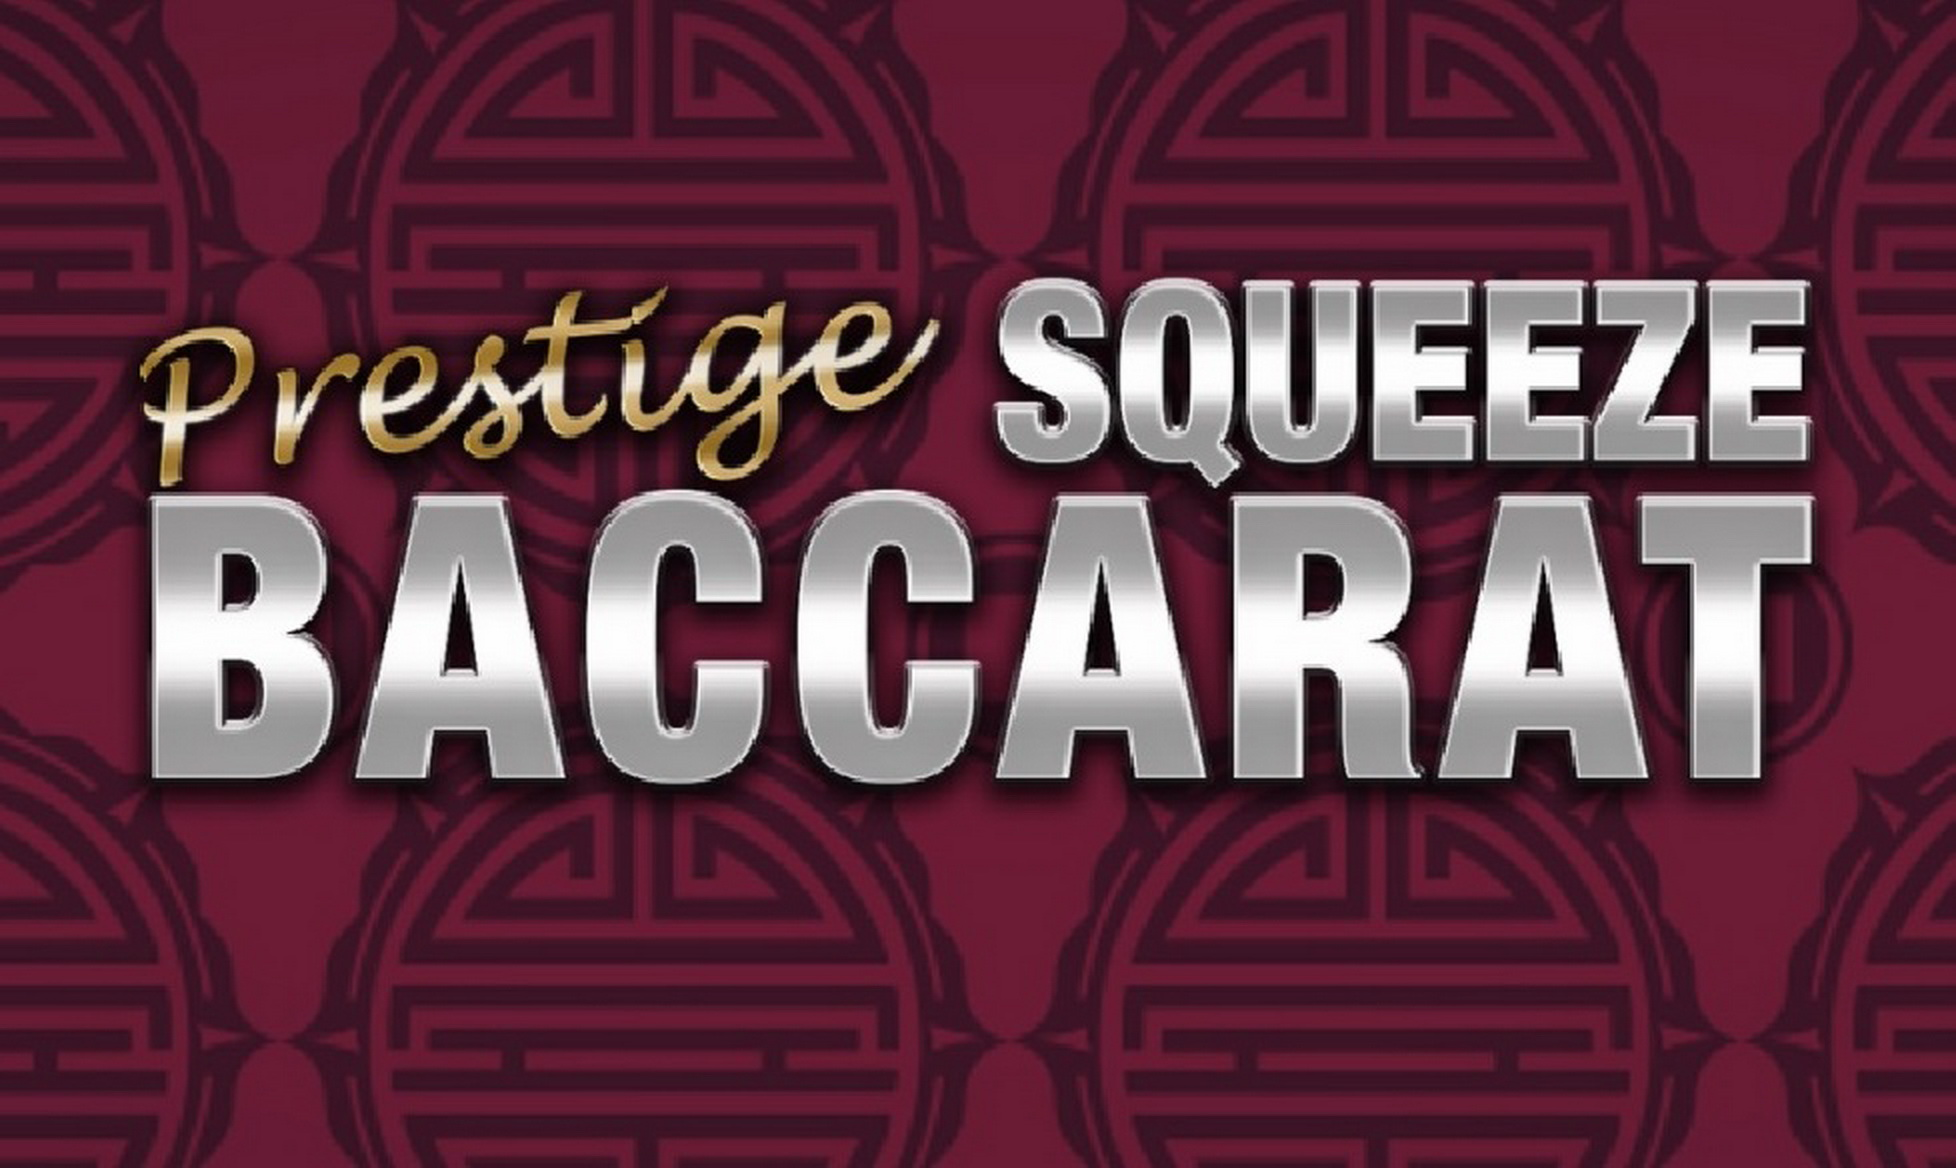 The Prestige Squeeze Baccarat Online Slot Demo Game by Playtech